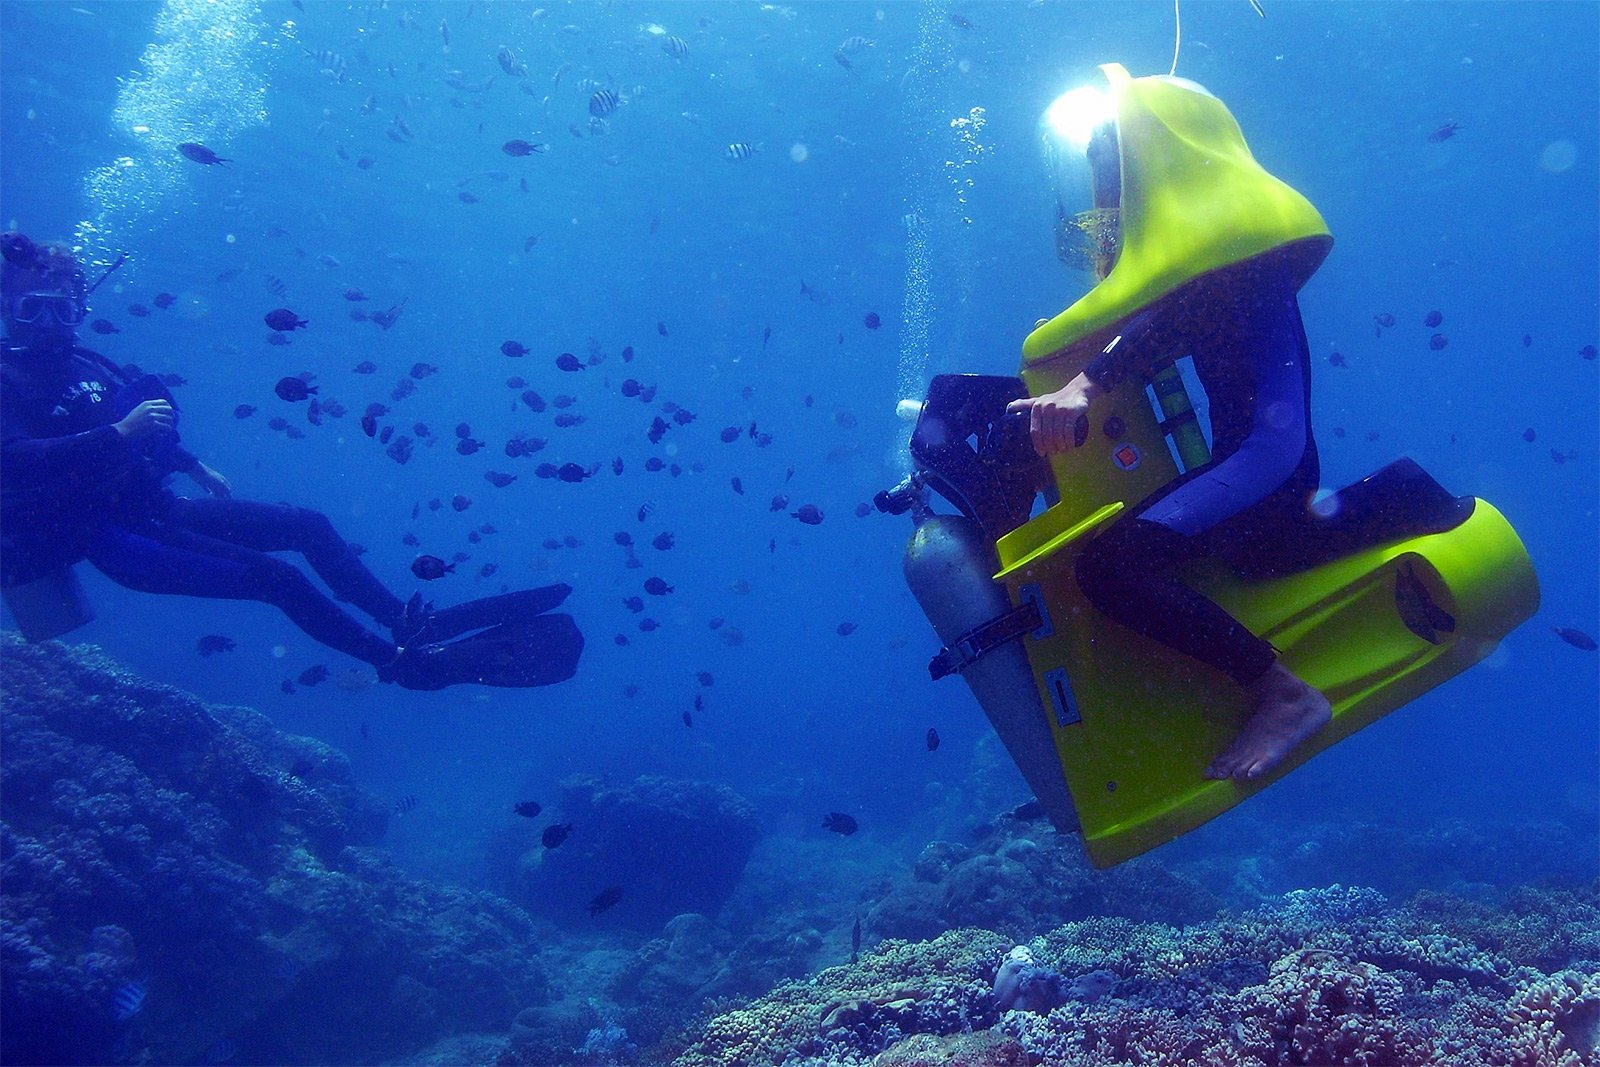 How To Ride The Underwater Bike In Phuket